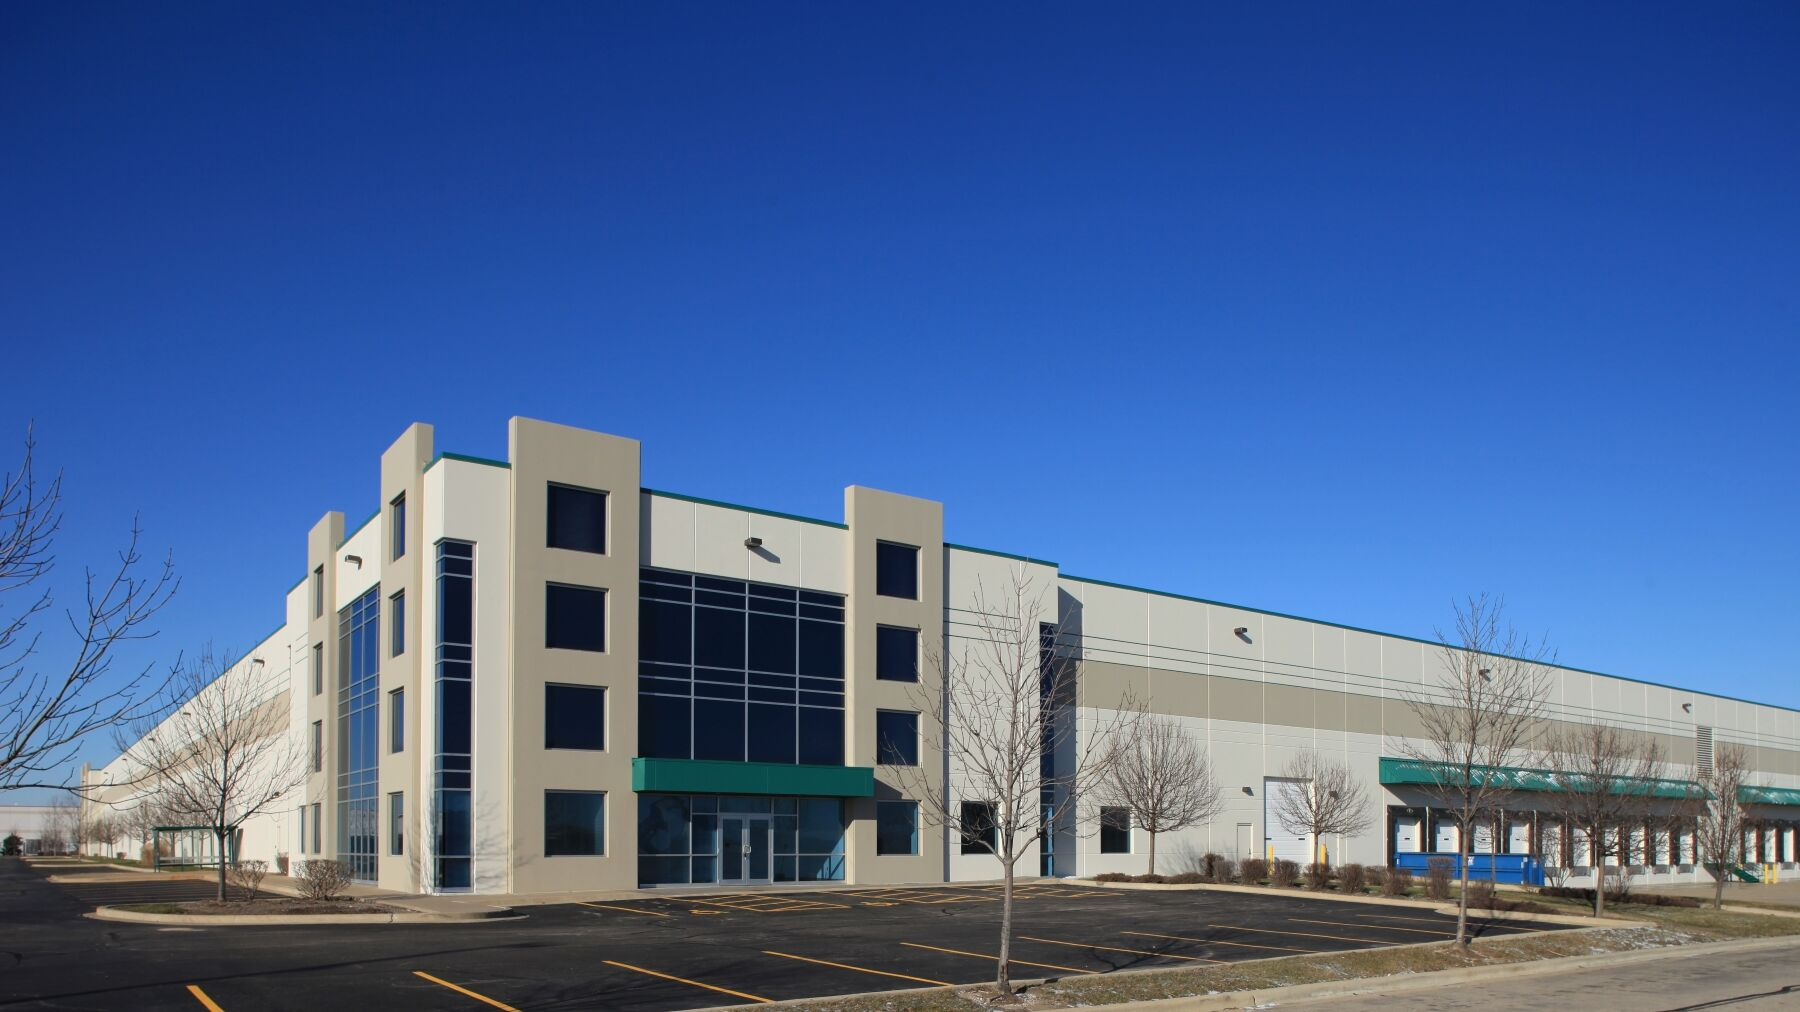 DPM-Prologis-Minooka-501-Internationale_Bldg-Image.jpg